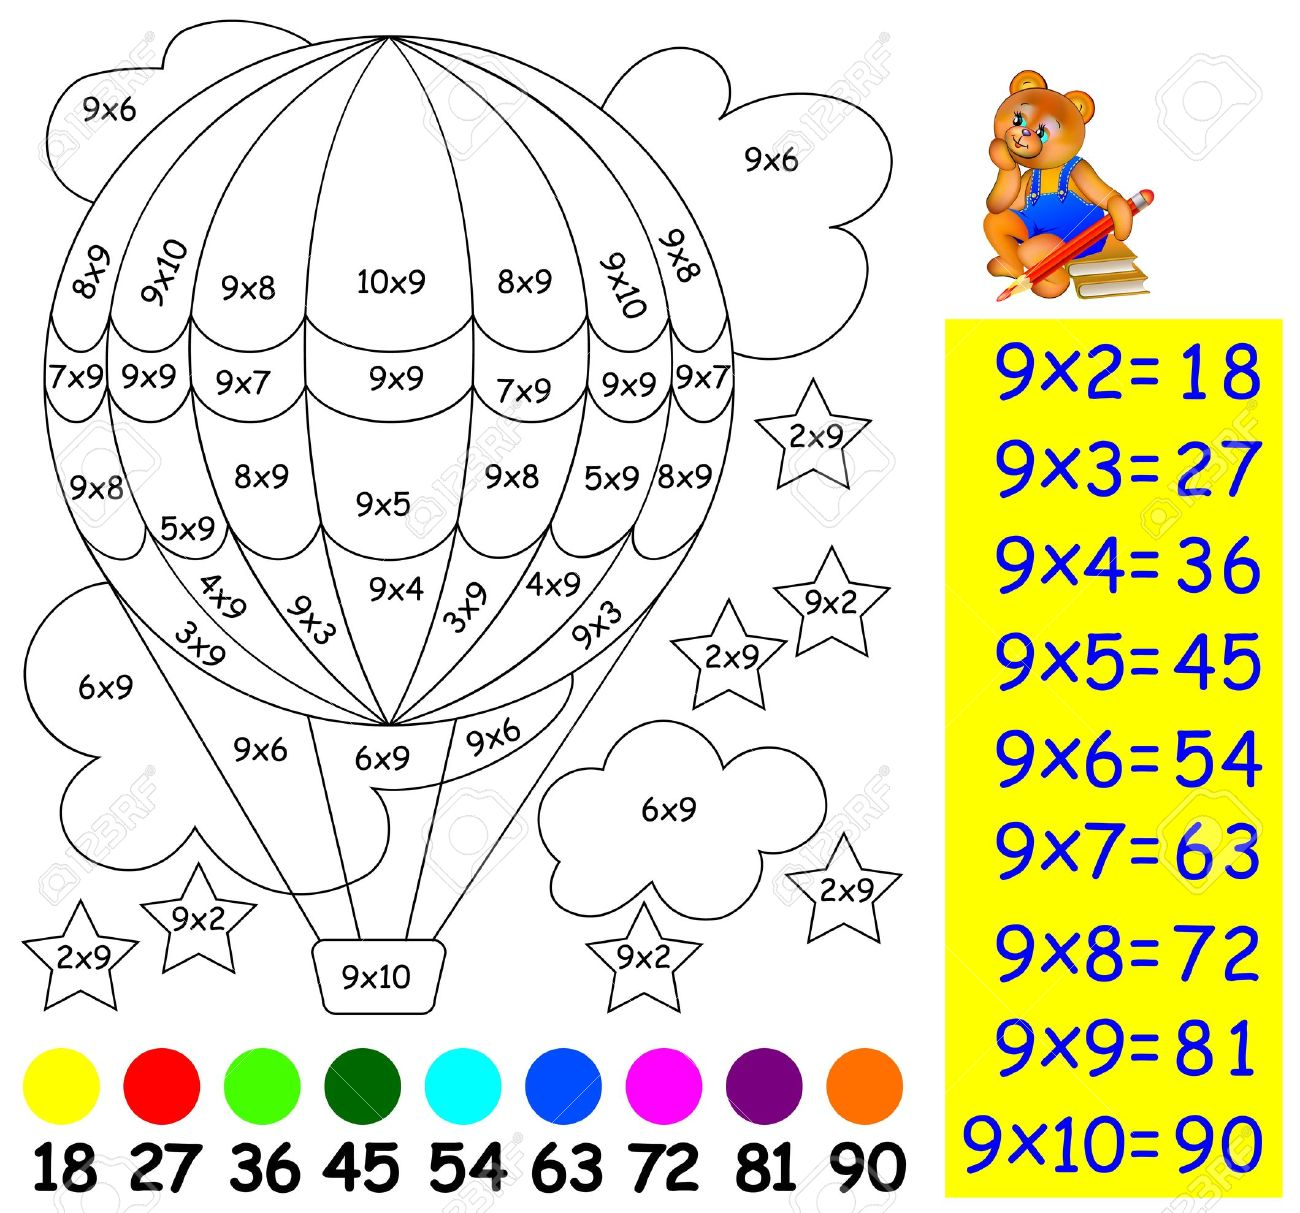 Multiplication table 20x20 images periodic table images multiplication table stock photos royalty free multiplication exercise for children with multiplication by nine need to gamestrikefo Images